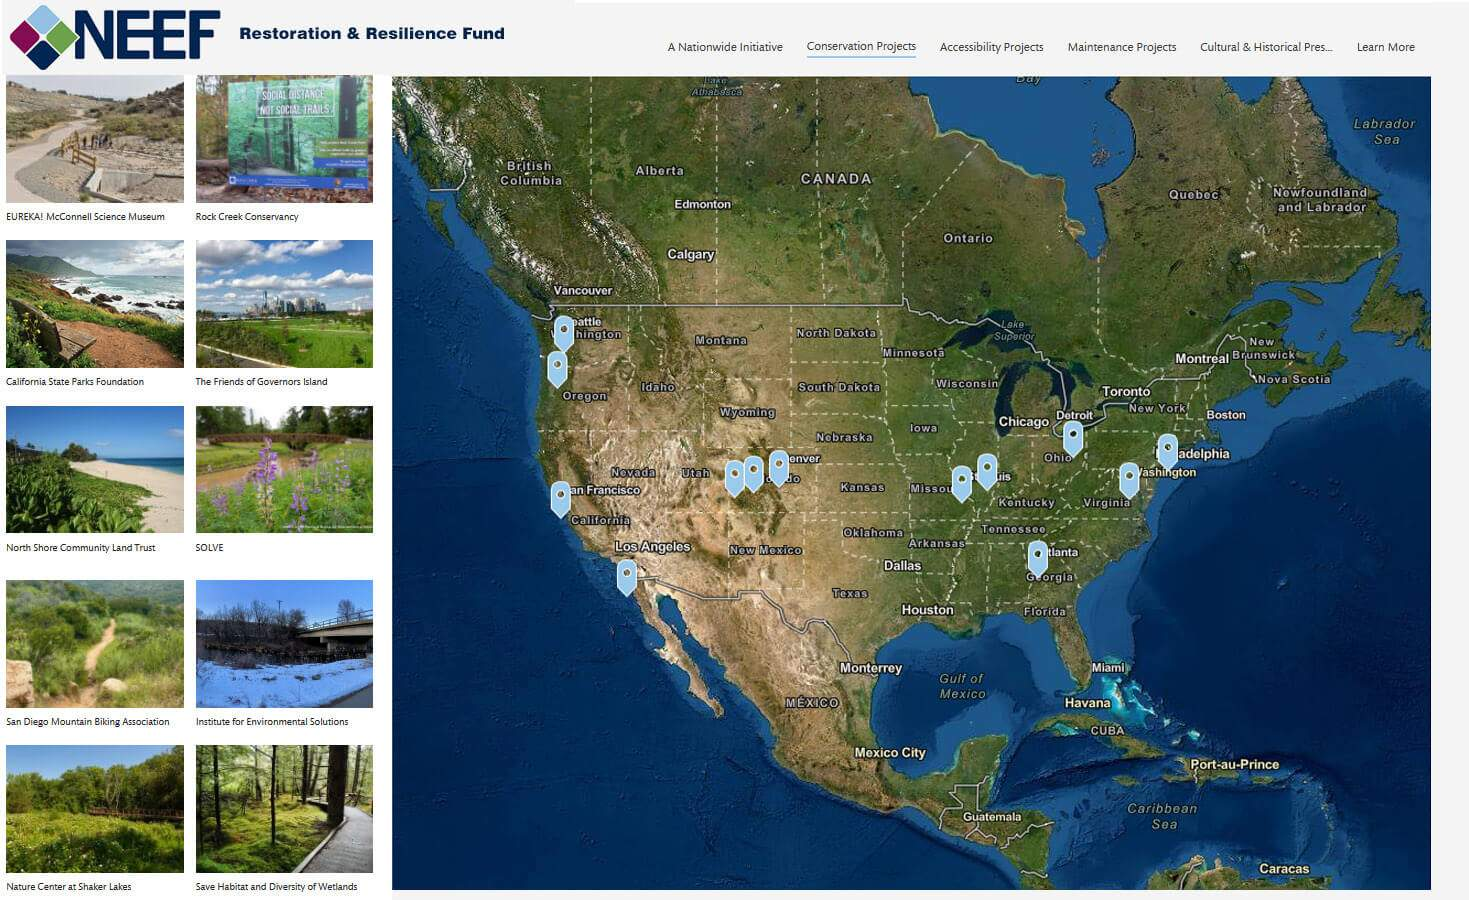 NEEF restoration and resilience grant fund story map